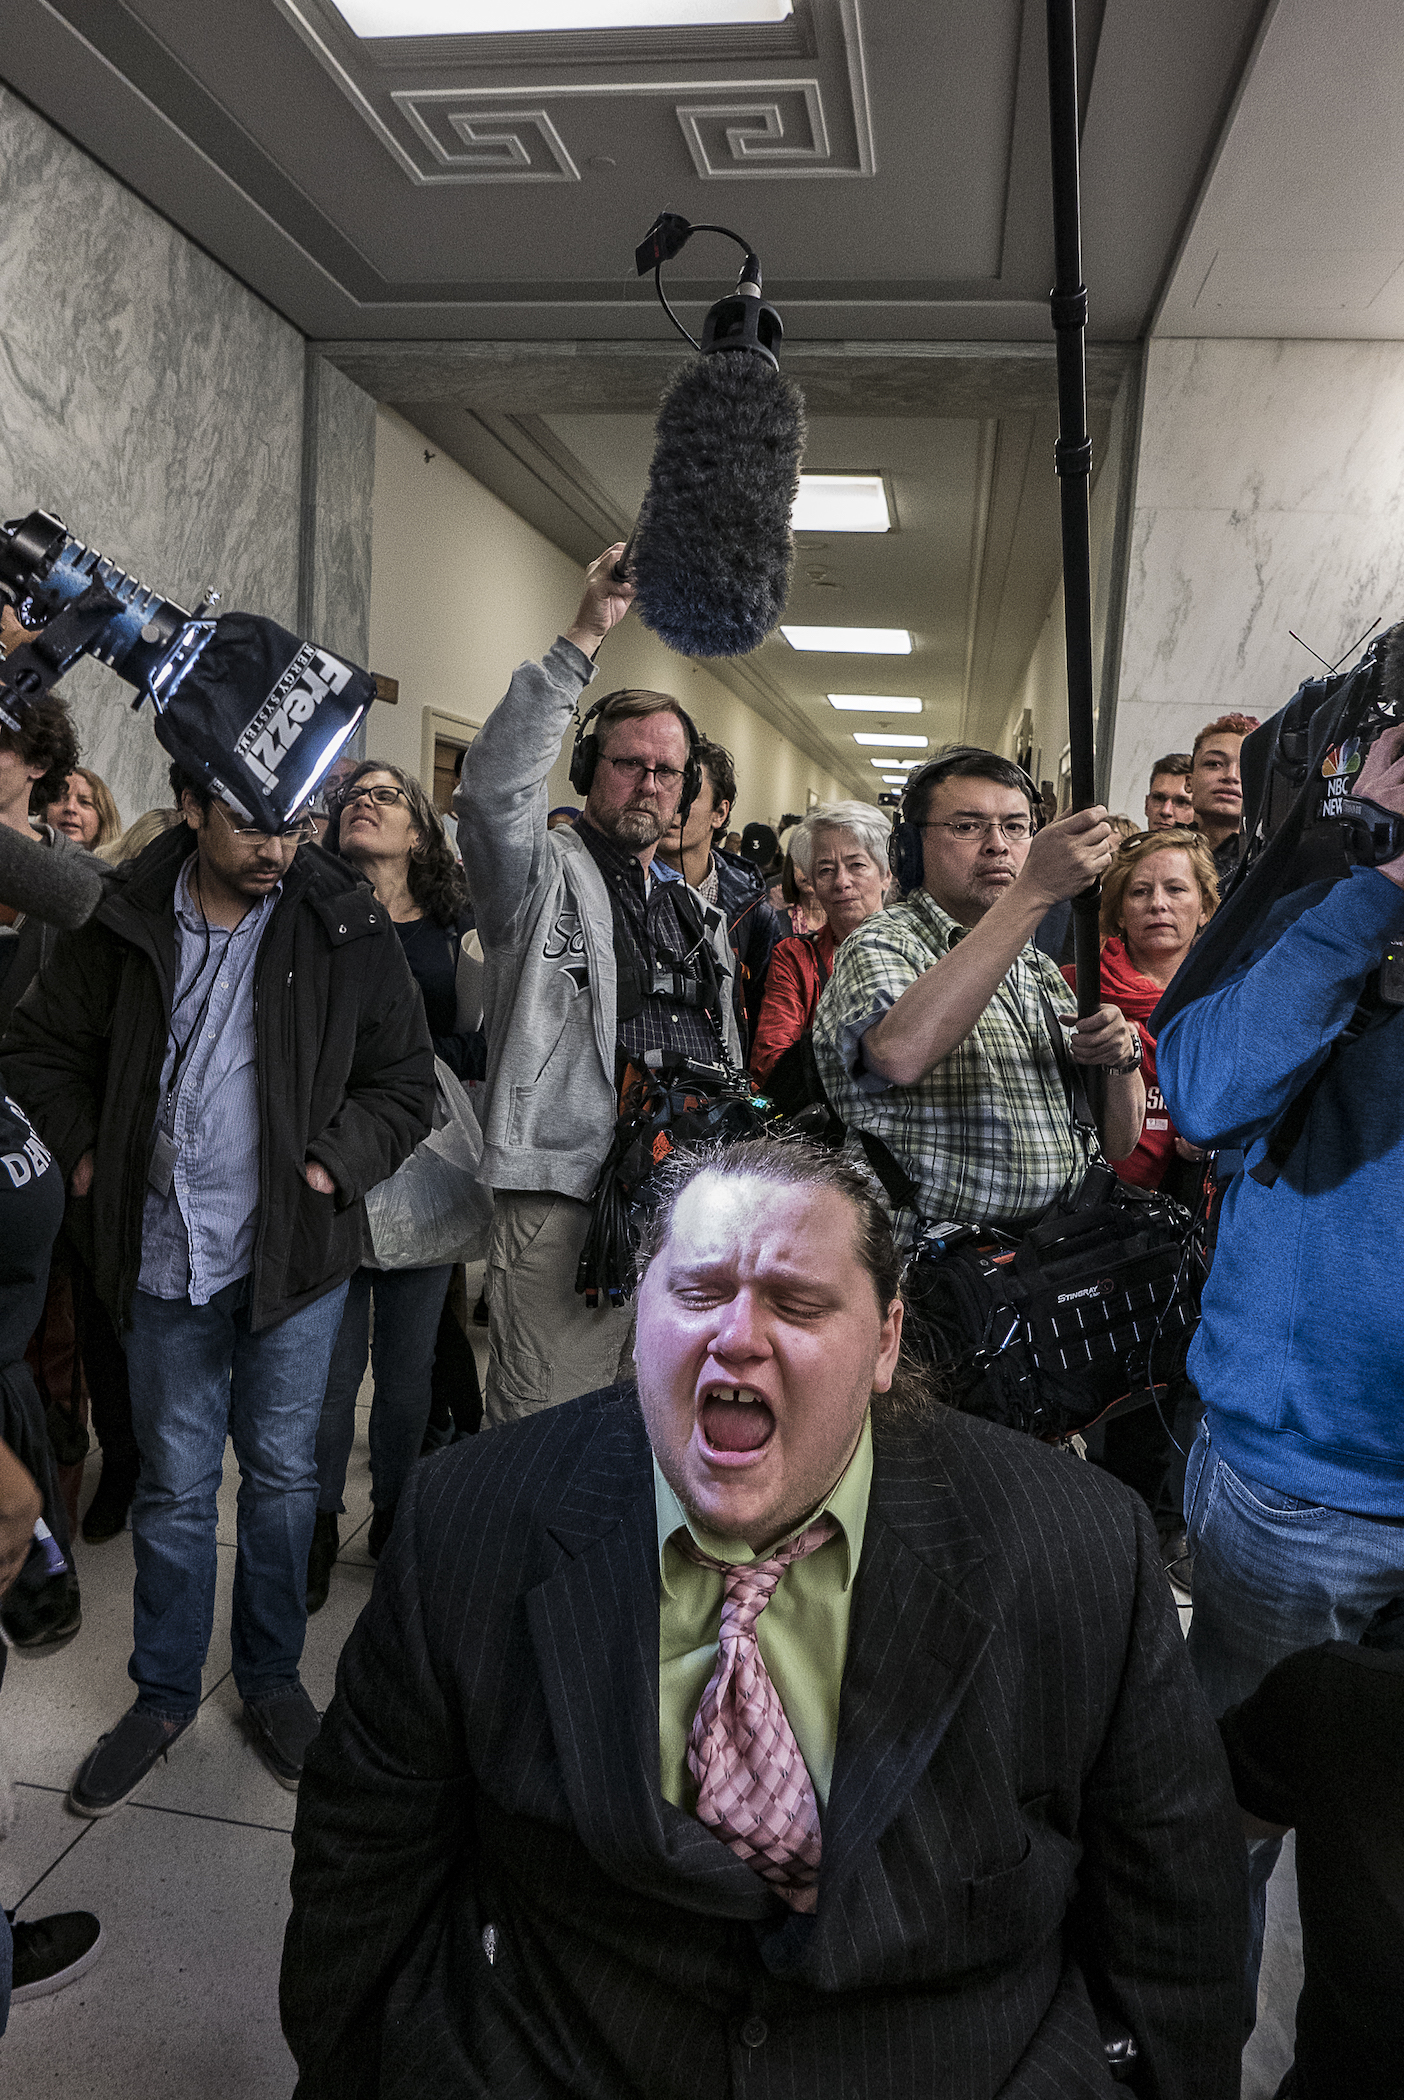 ©Ken Schles.  #GOPTax Scam Protests, Rayburn House Office Building, December 18, 2017, Washington DC